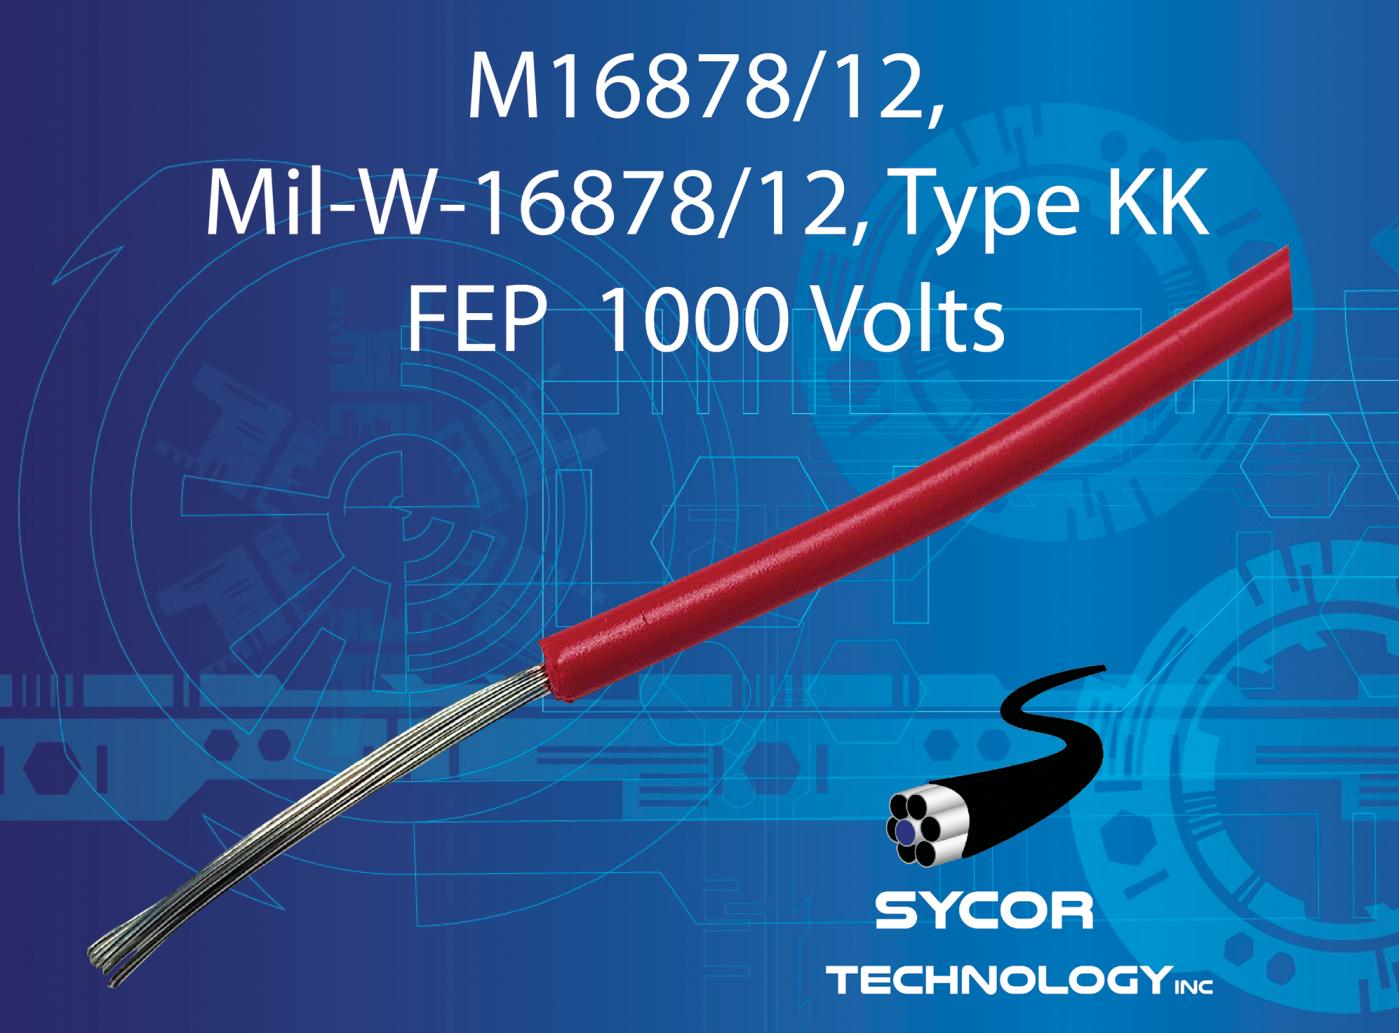 M16878/12, MIL-W-16878/12, Type KK Wire